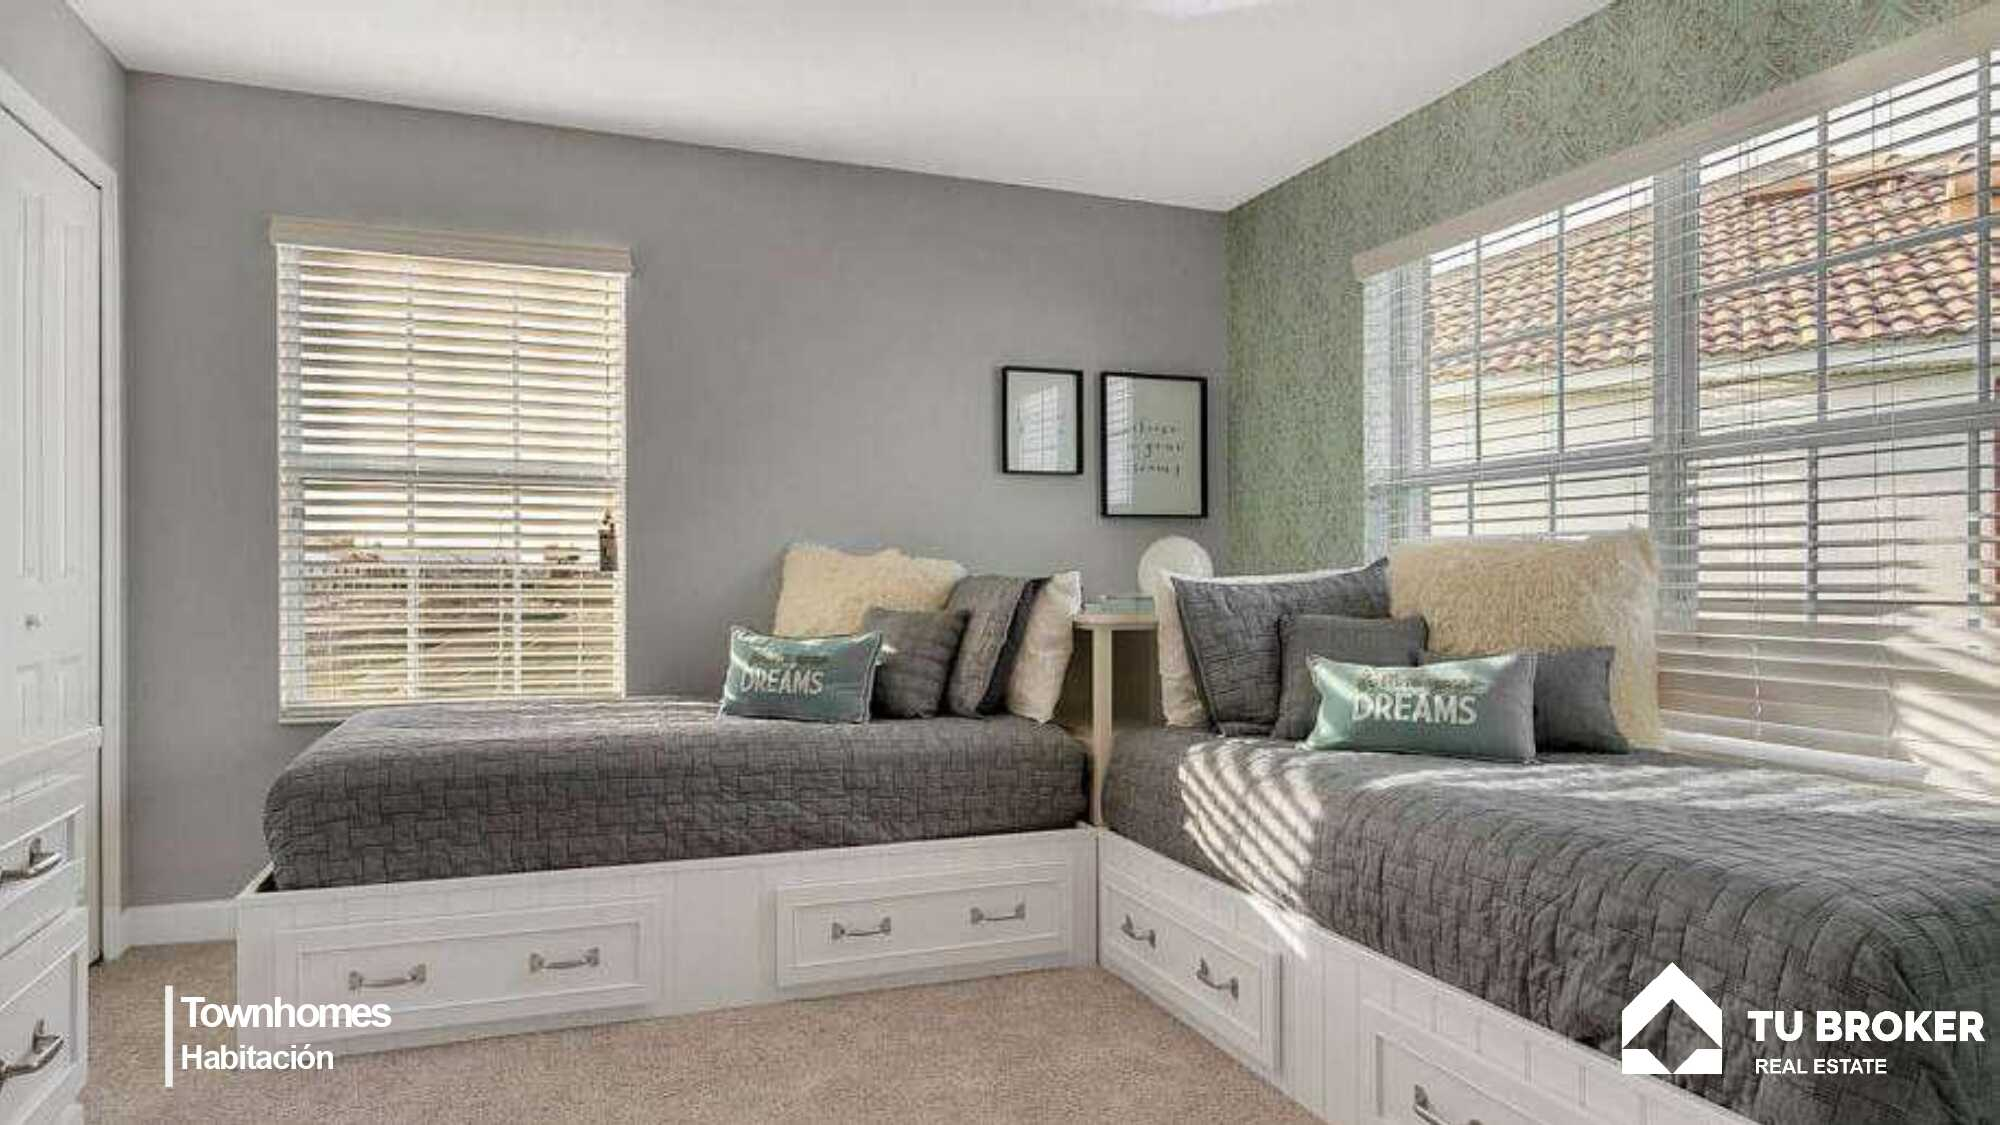 pag-orla-sl-townhomes_compressed-1_page-0026_optimized